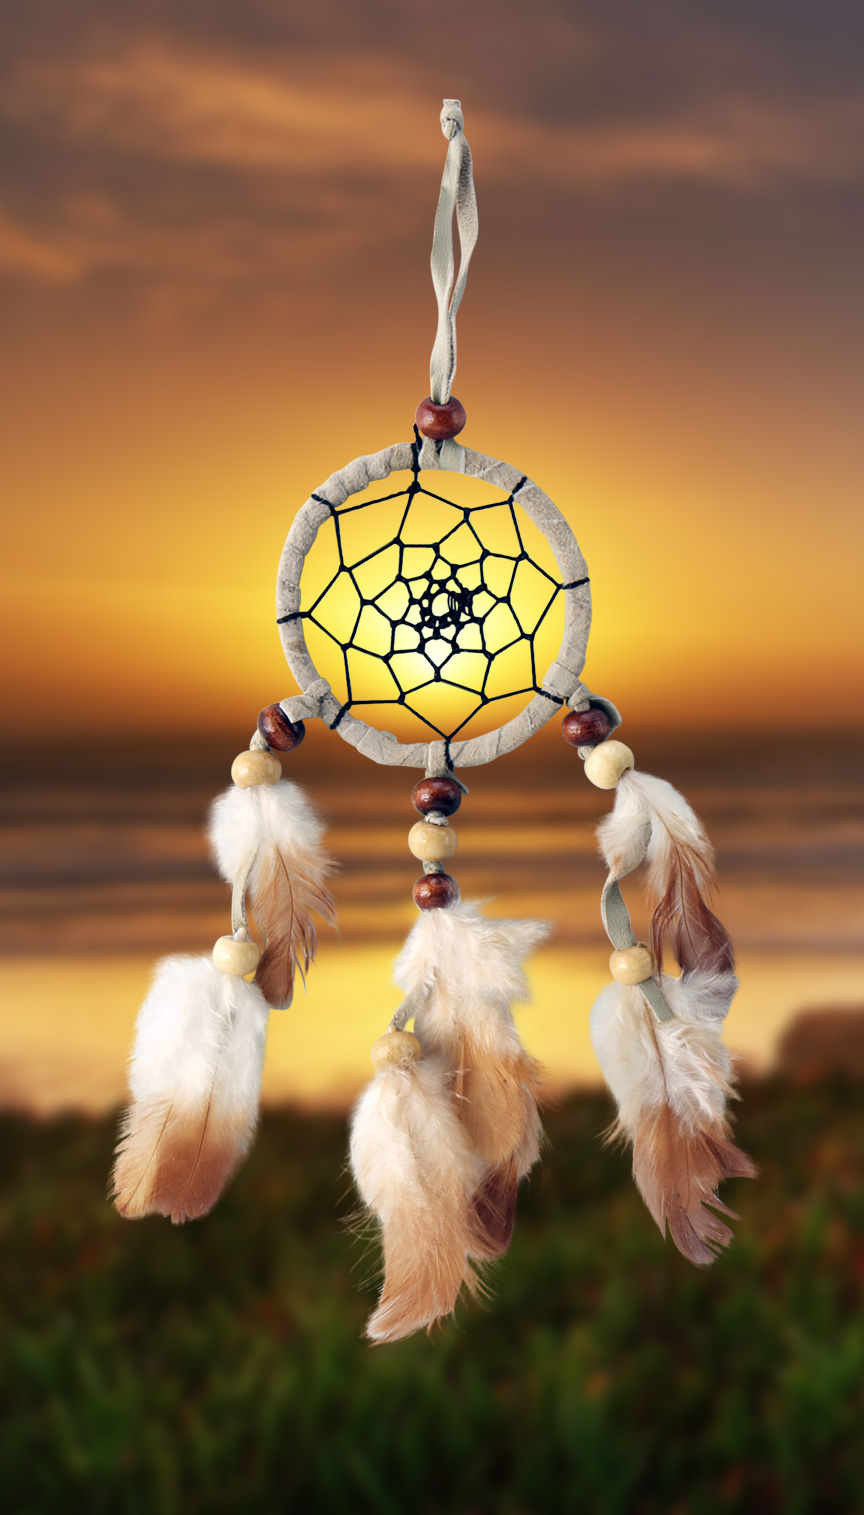 Shows an image of dreamcatcher owg006 on a scenic background